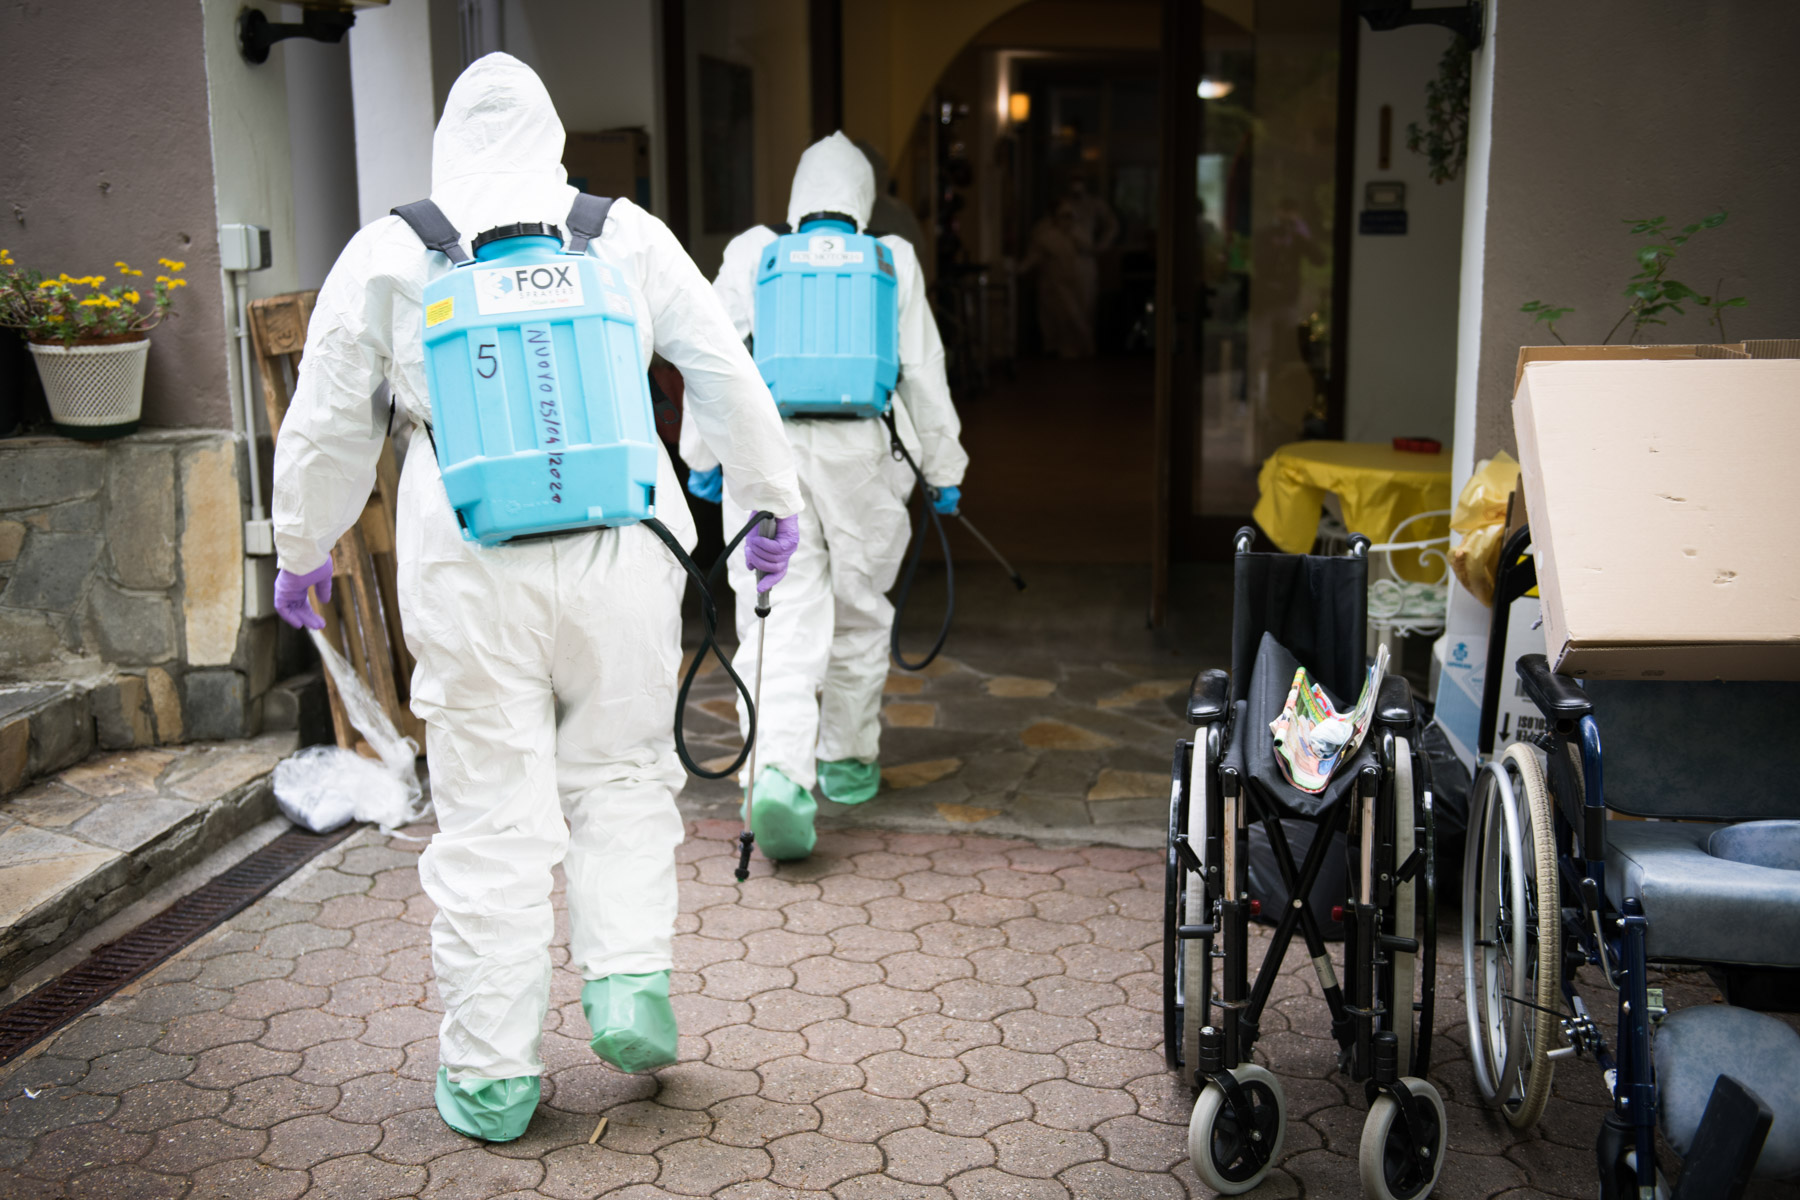 30 April 2020: Italian soldiers disinfect a home for the elderly in Turin, Italy, during the Covid-19 pandemic. (Photograph by Stefano Guidi/ Getty Images)